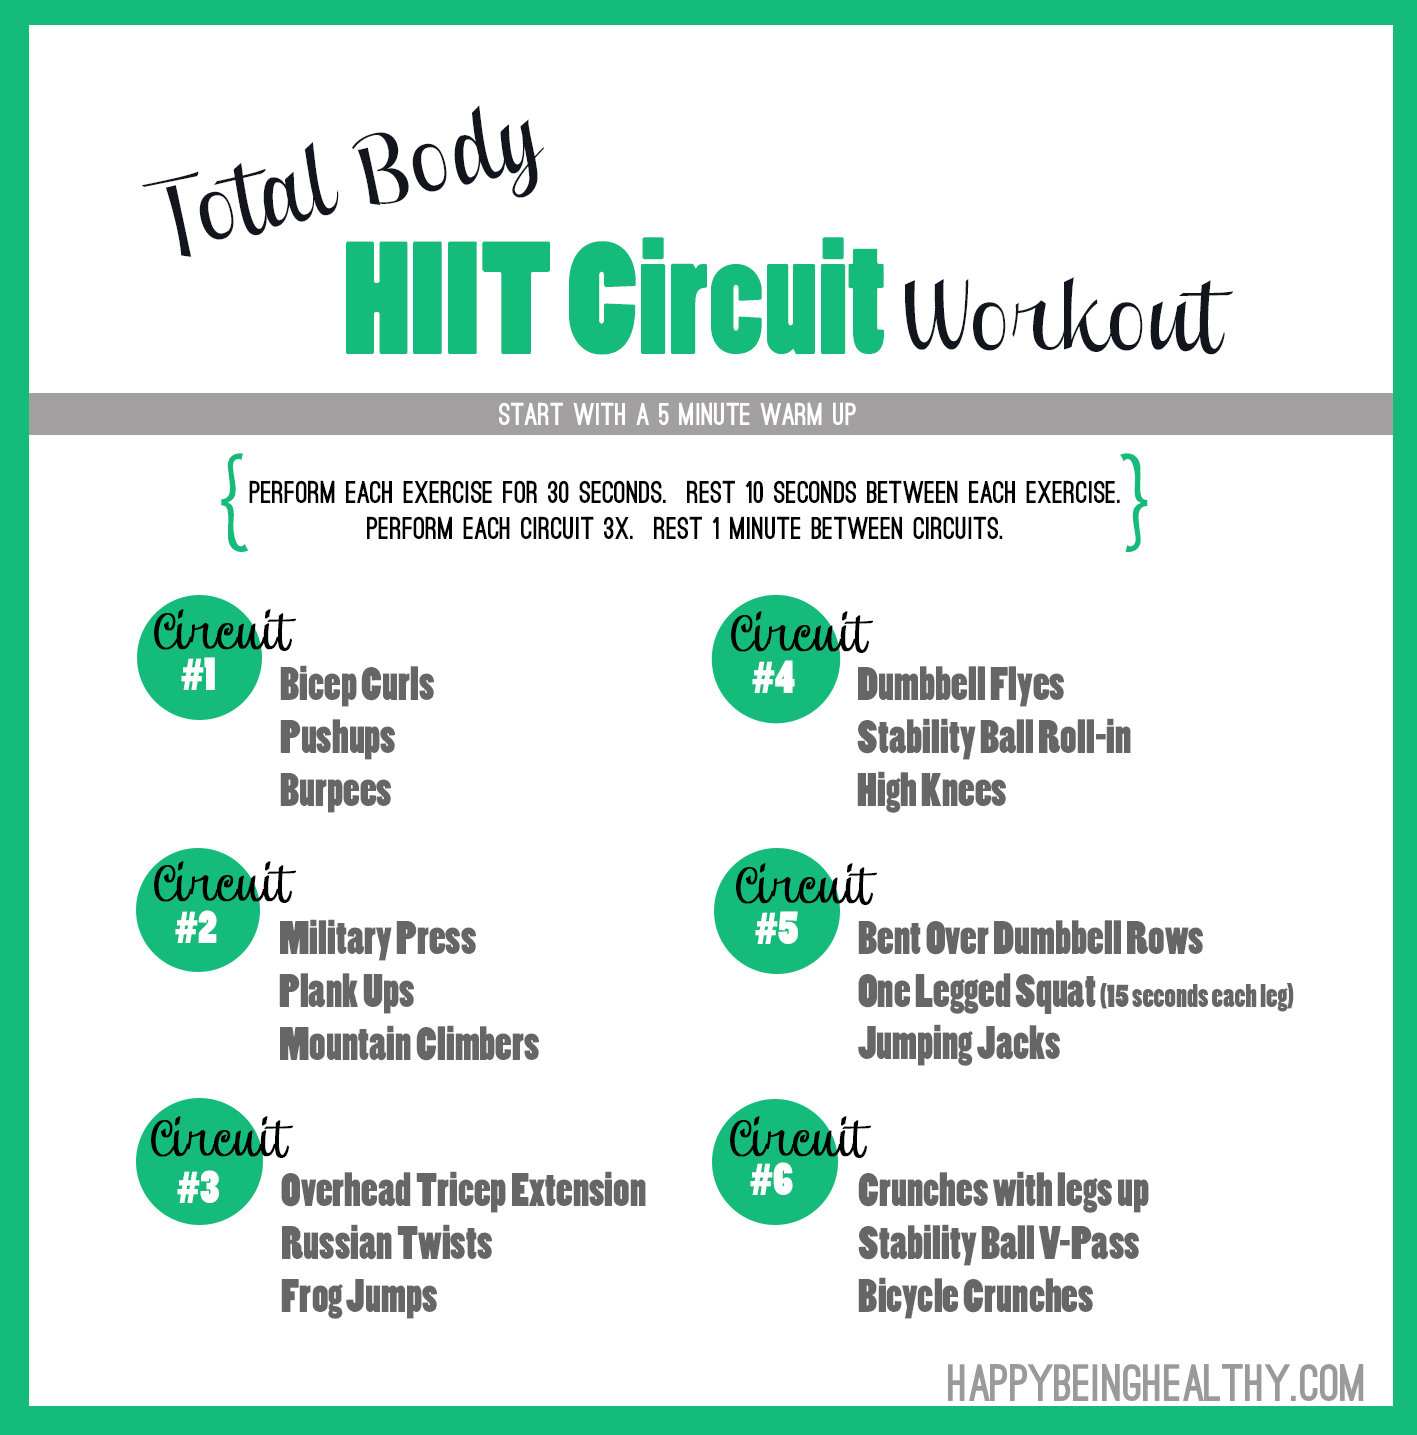 Total Body HIIT Circuit Workout